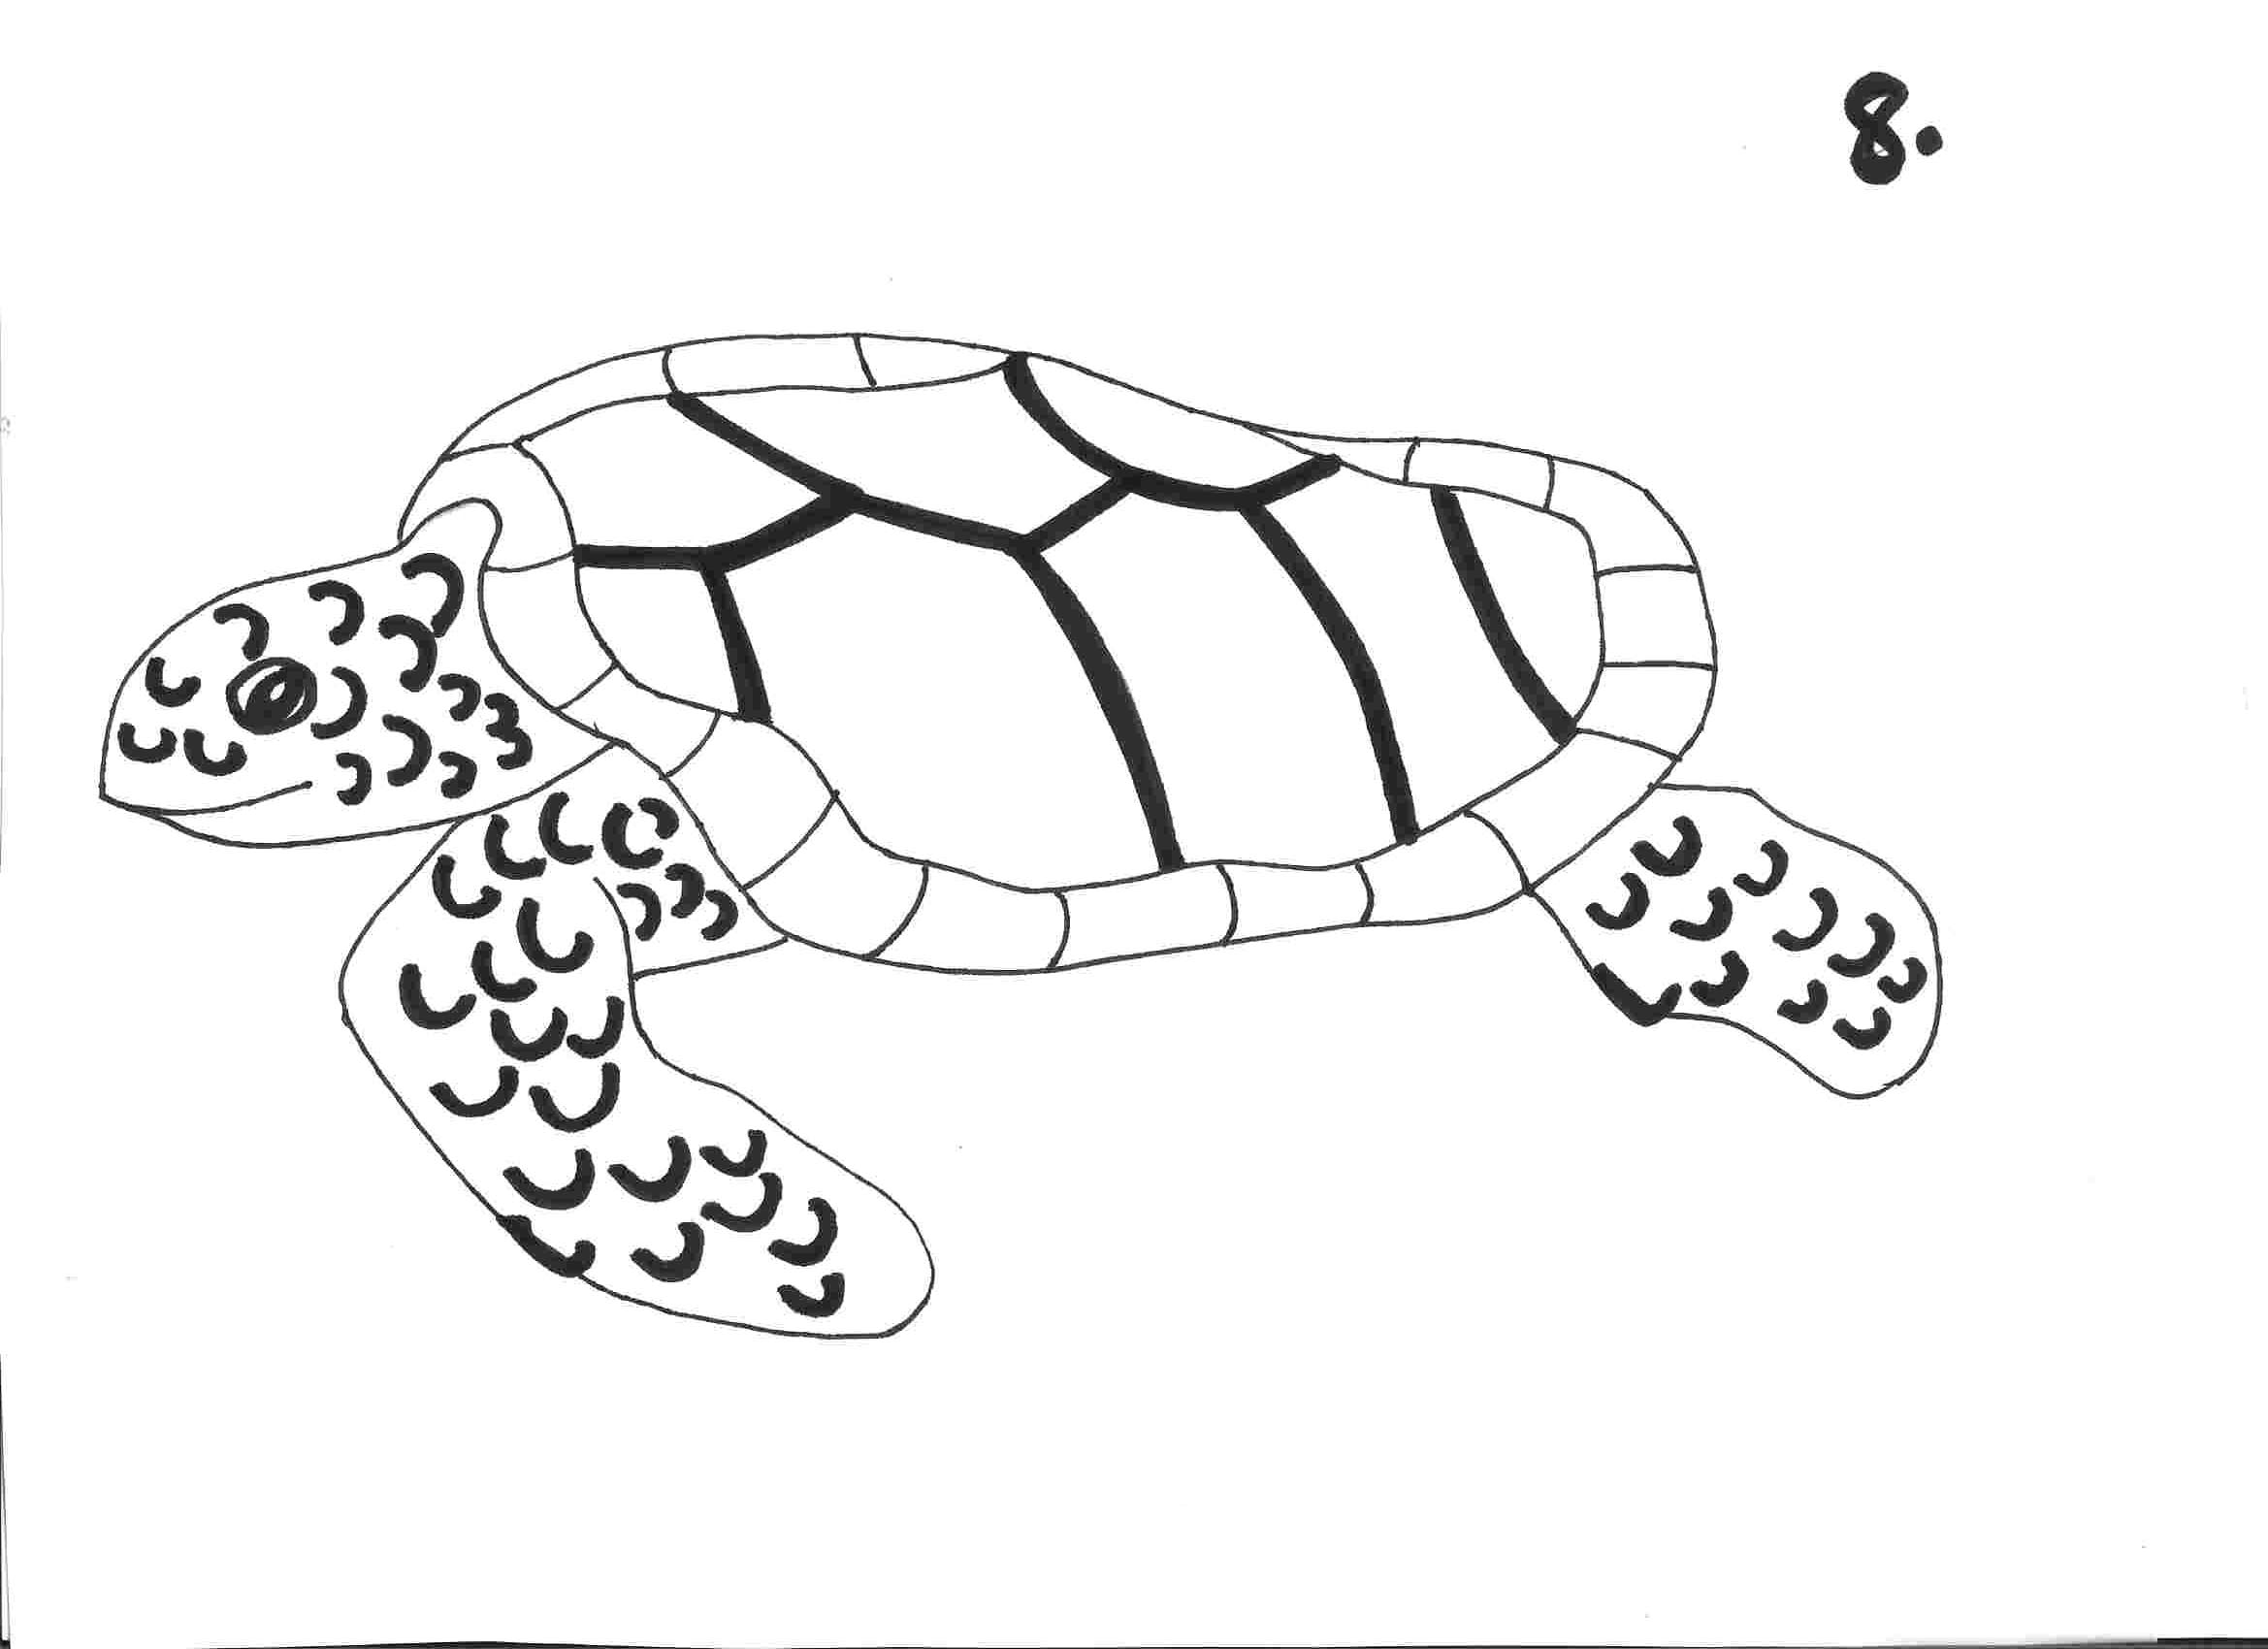 Free Turtle Drawing Download Free Clip Art Free Clip Art